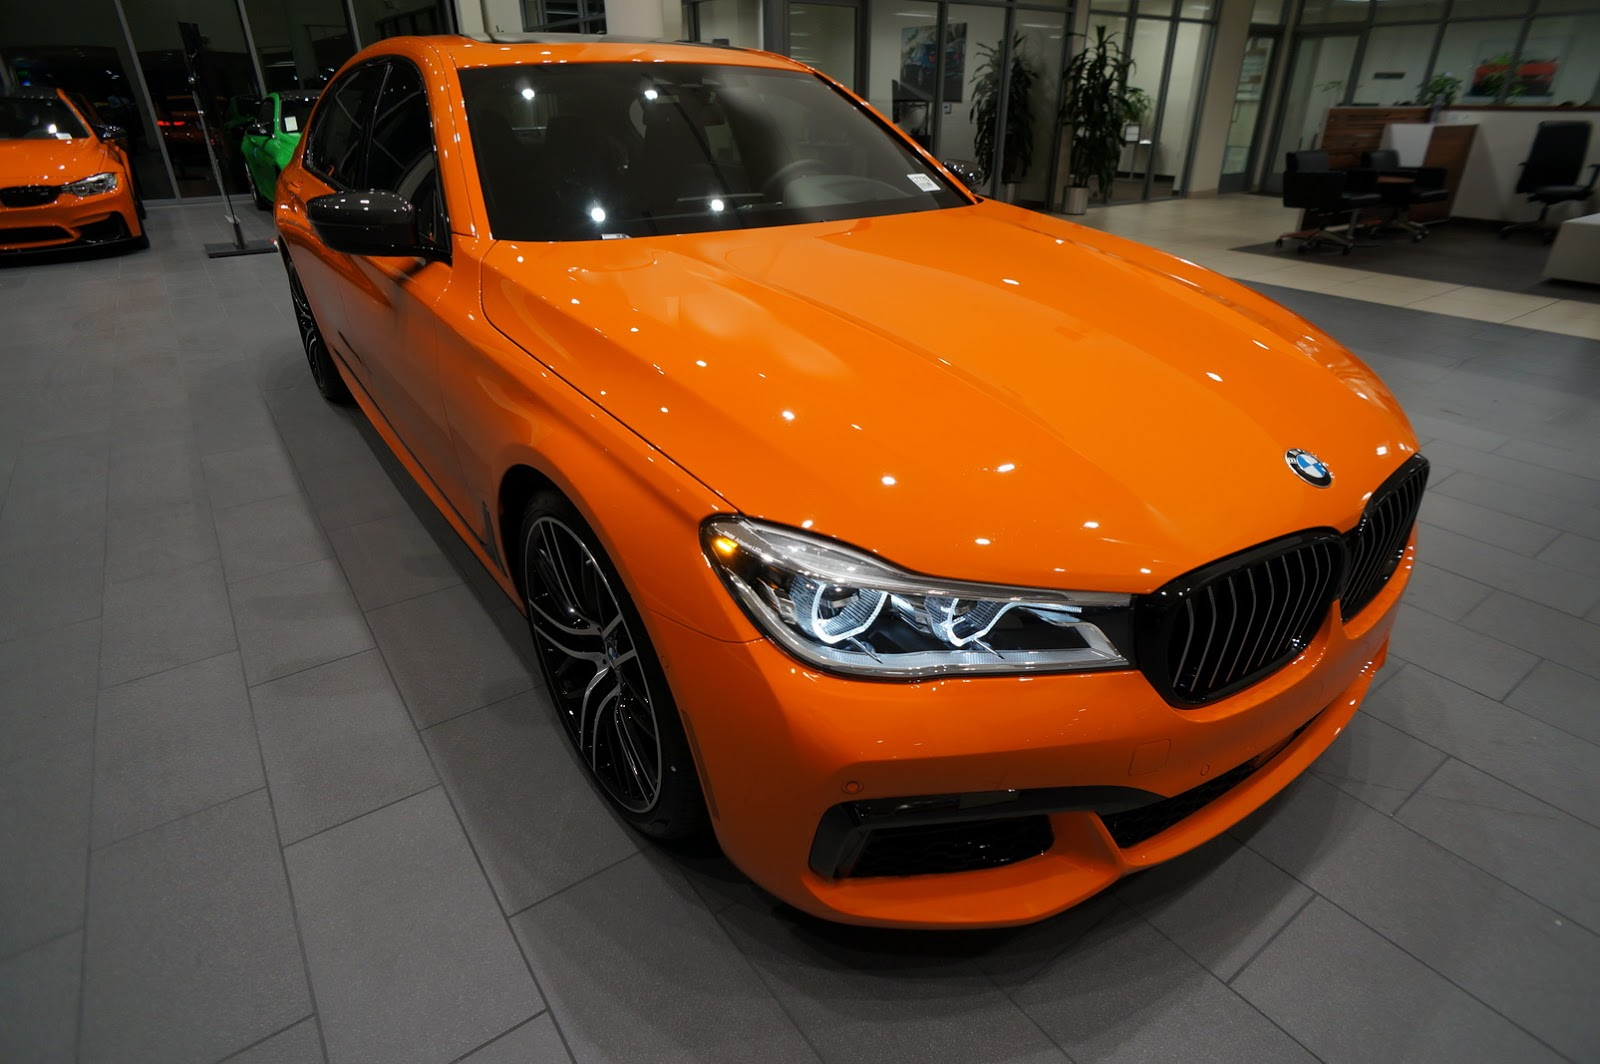 BMW_750i_Fire_Orange_01